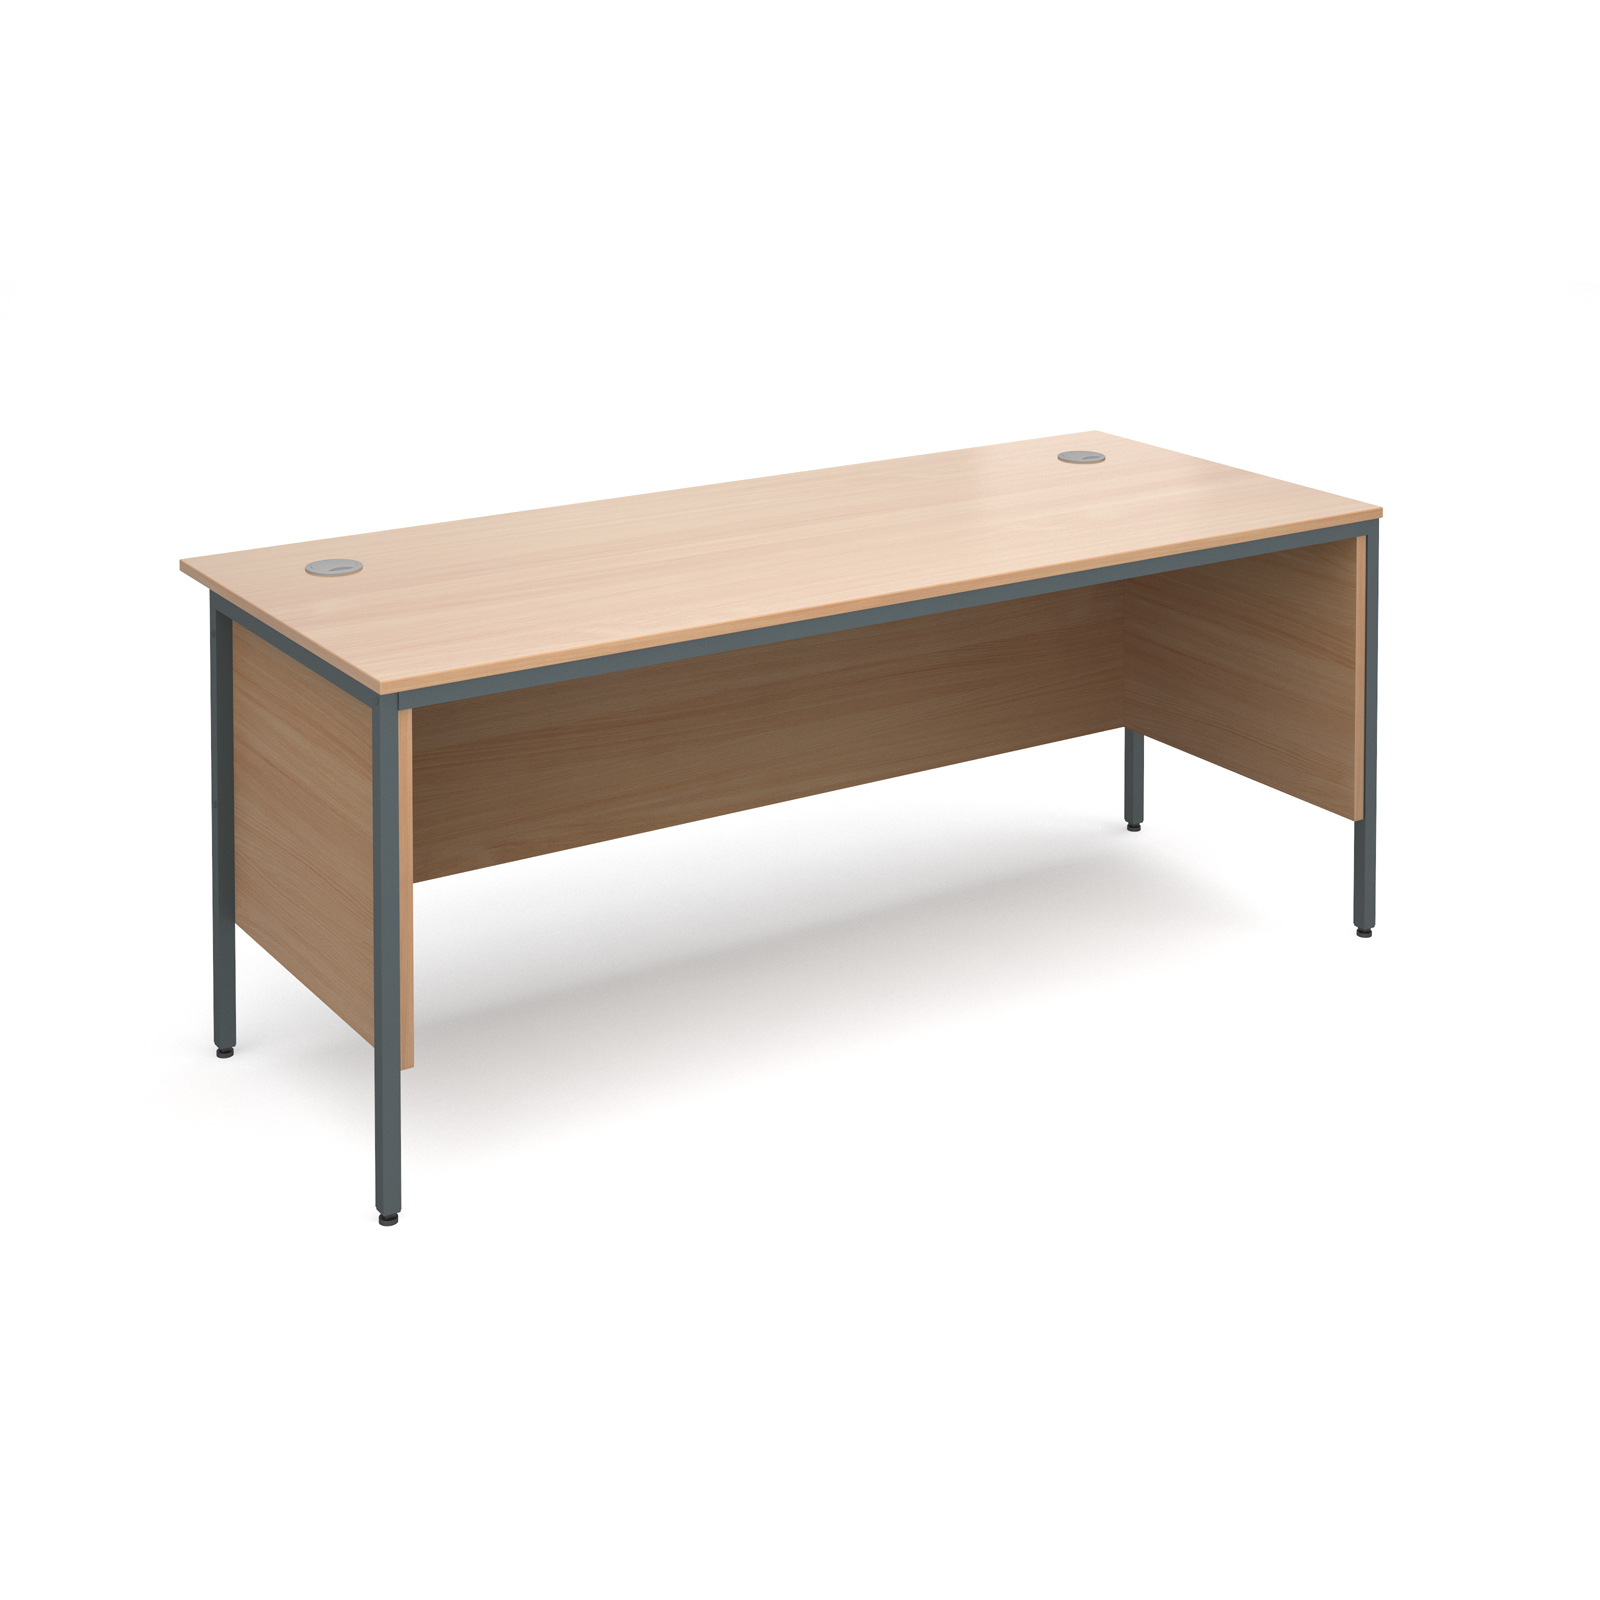 Maestro H frame straight desk with side panels 1786mm - beech